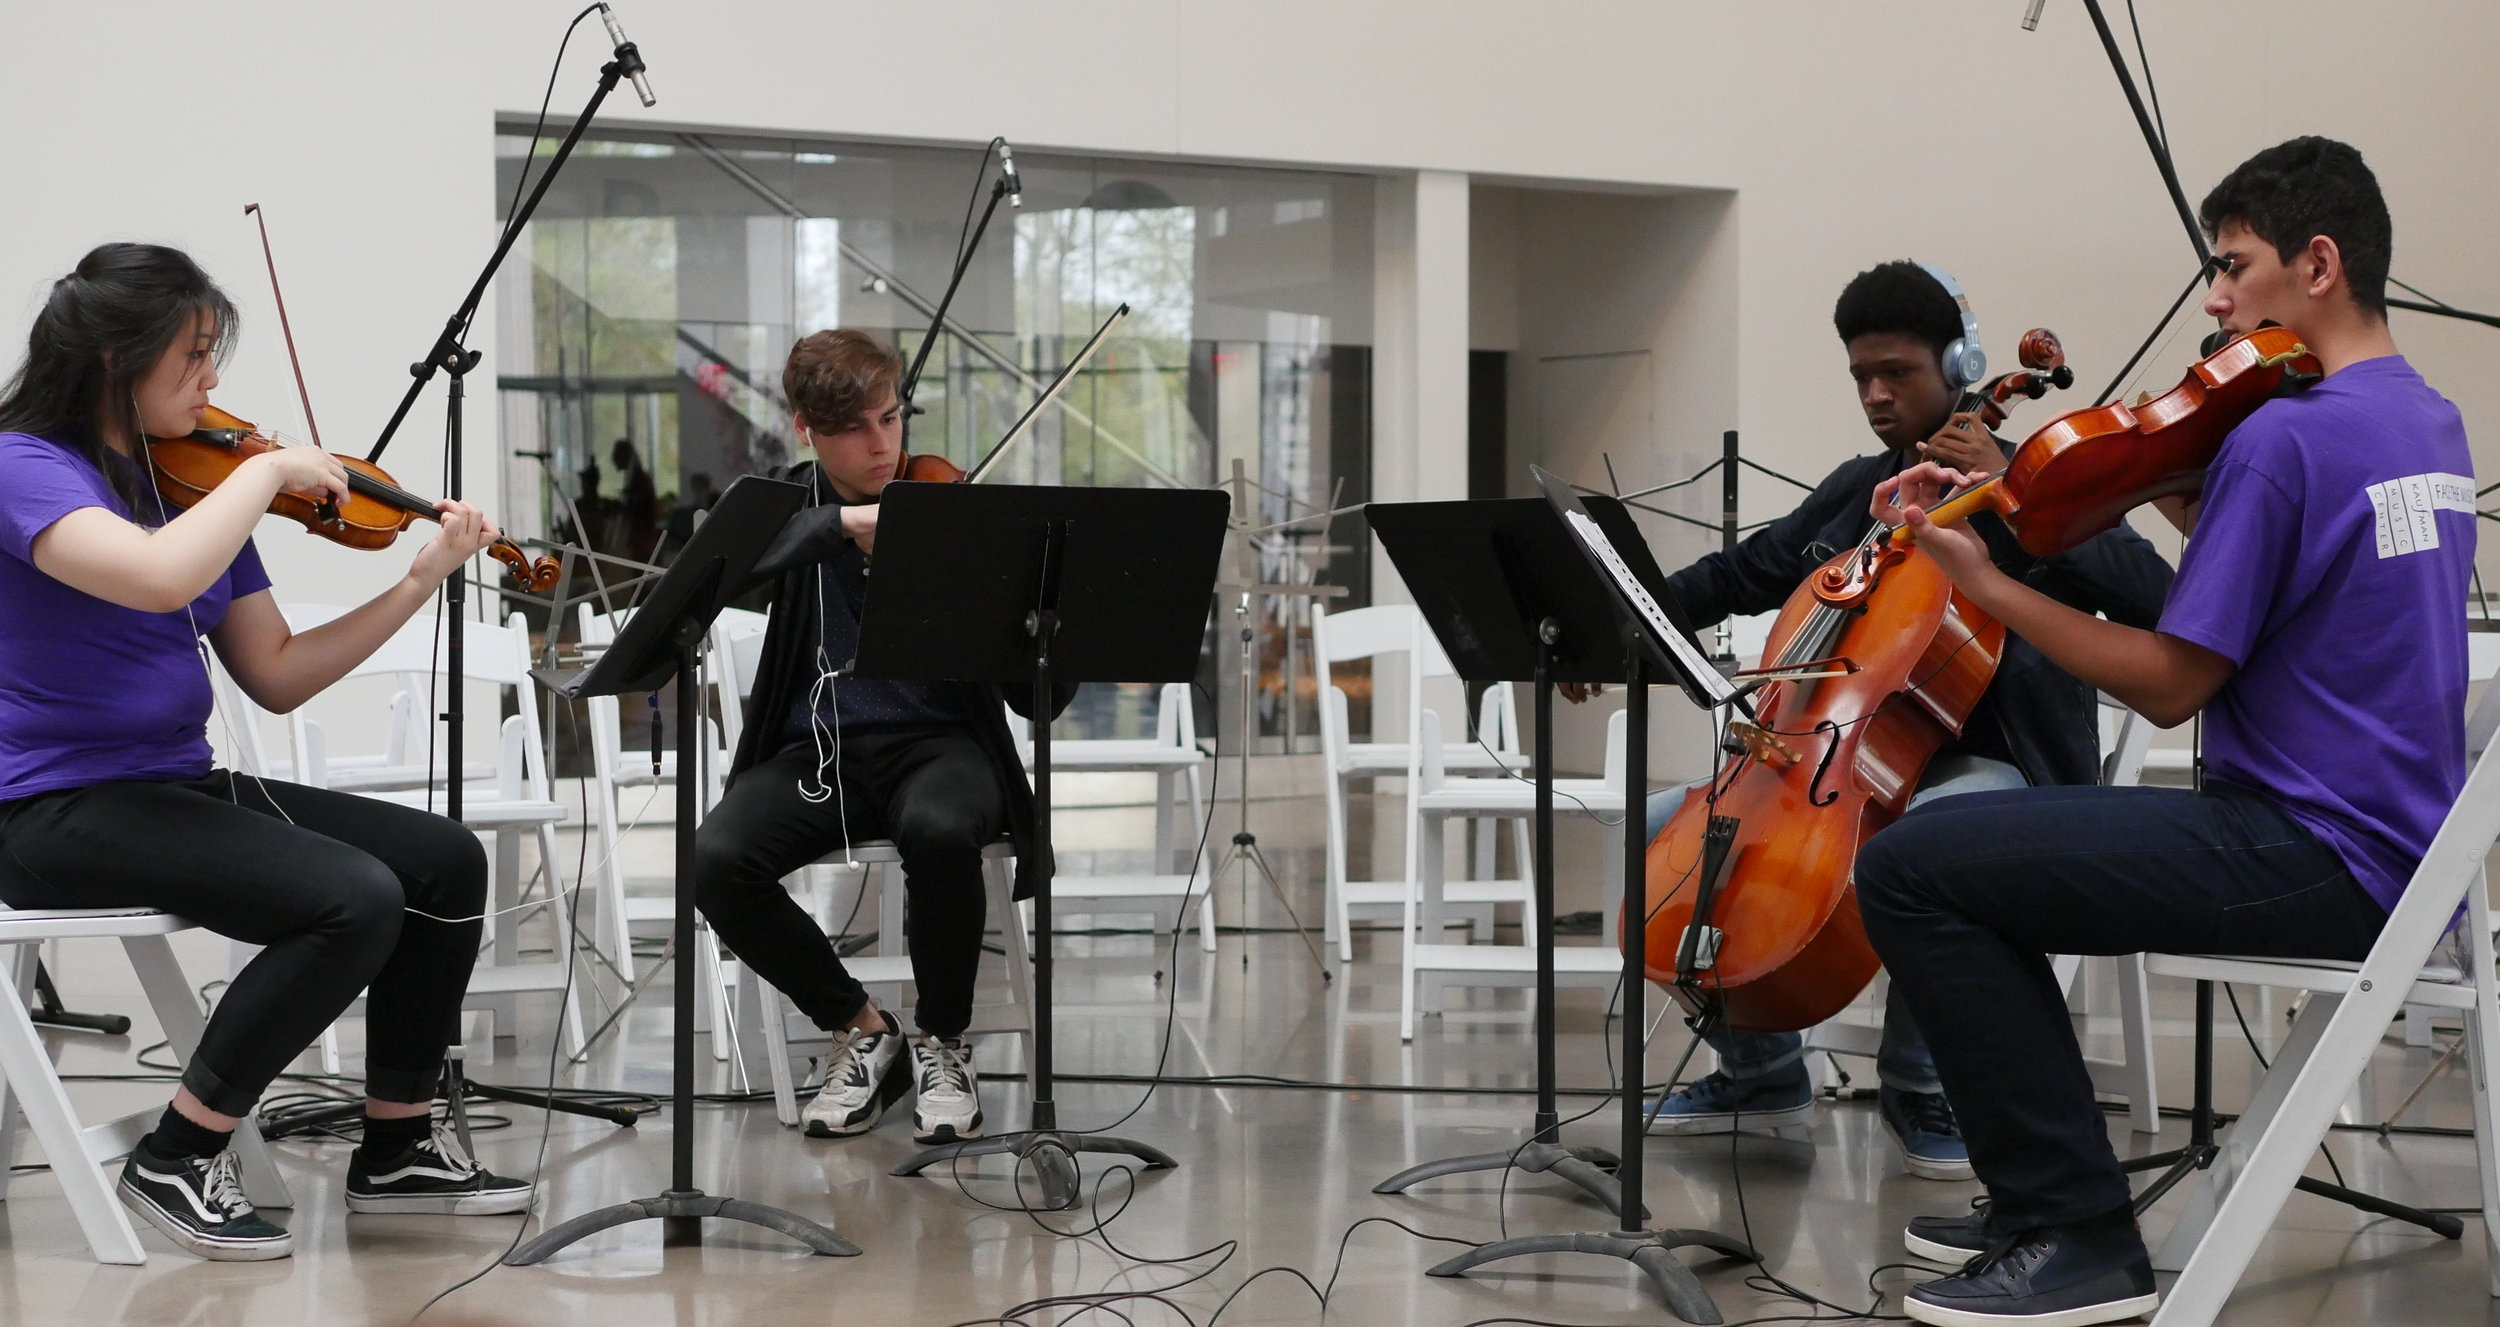 """Members of the Kaufman Music Center's Face the Music ensemble perform """"Stage III (Grace)"""" from  Recurrent Stages  at the Queens Museum, Queens, NY Colleen Bixler and Ruby Pine, violins; Amirah Stewart, viola; Layla Krantz, cello"""